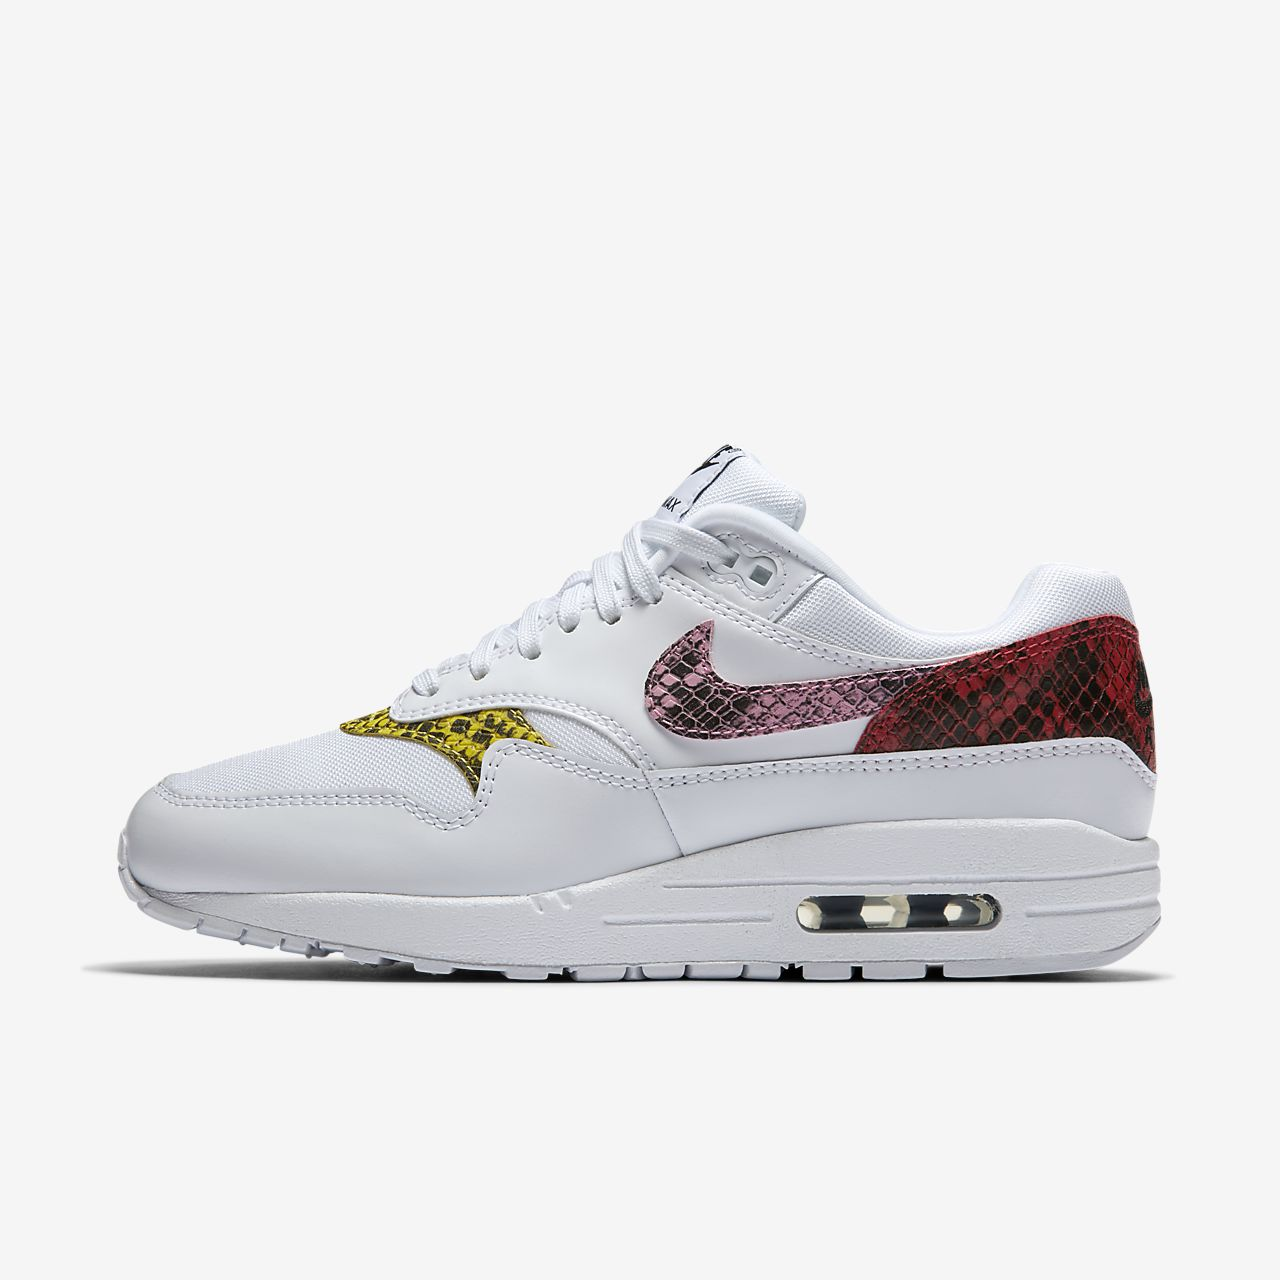 23480e74c07f Nike Air Max 1 Premium Animal Women s Shoe. Nike.com GB